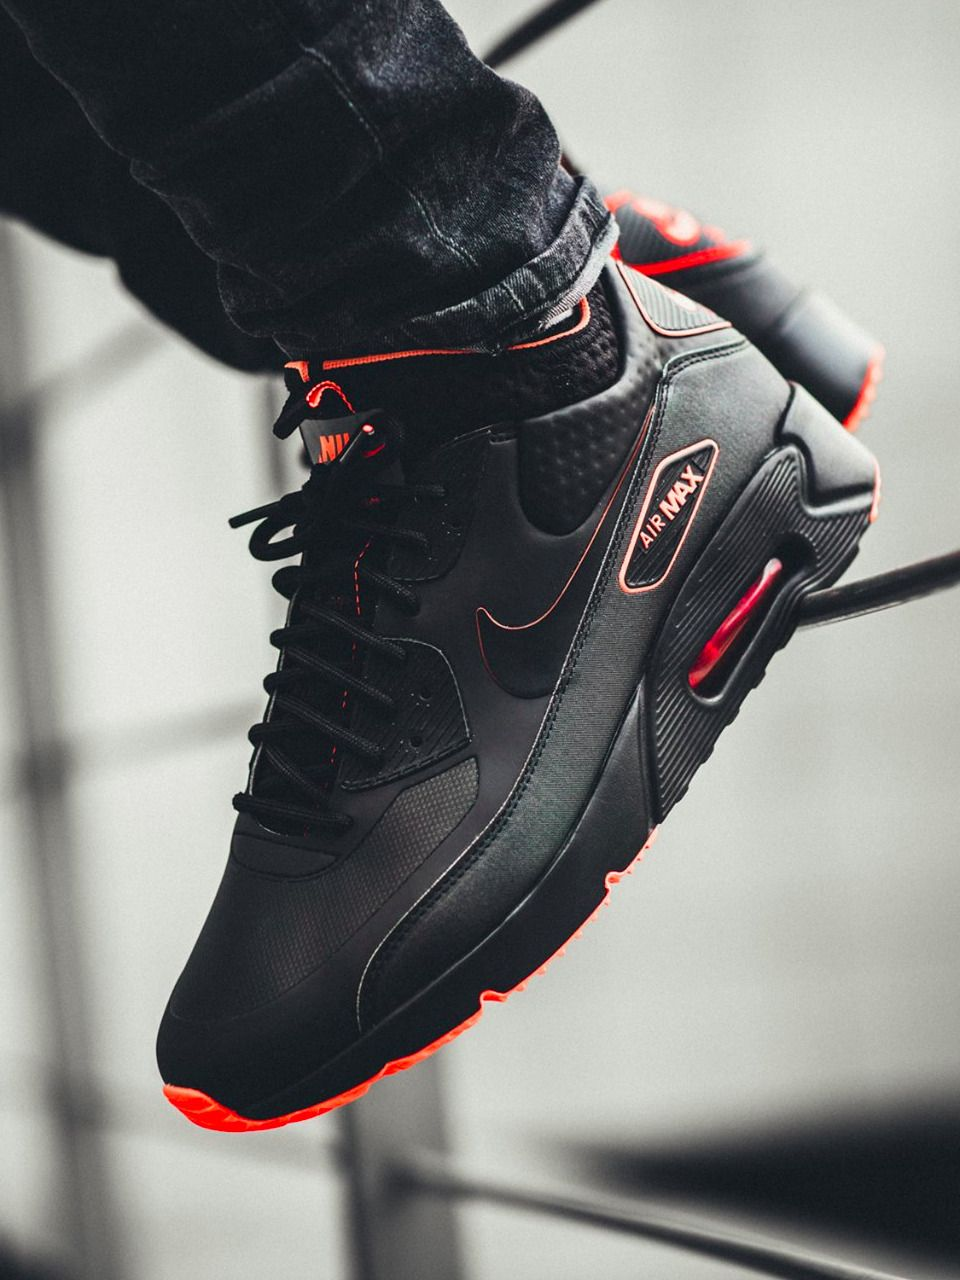 timeless design 859e5 4ddd0 Nike Air Max 90 Ultra Mid Winter SE - Black Crimson - 2017 (by chmielna20)